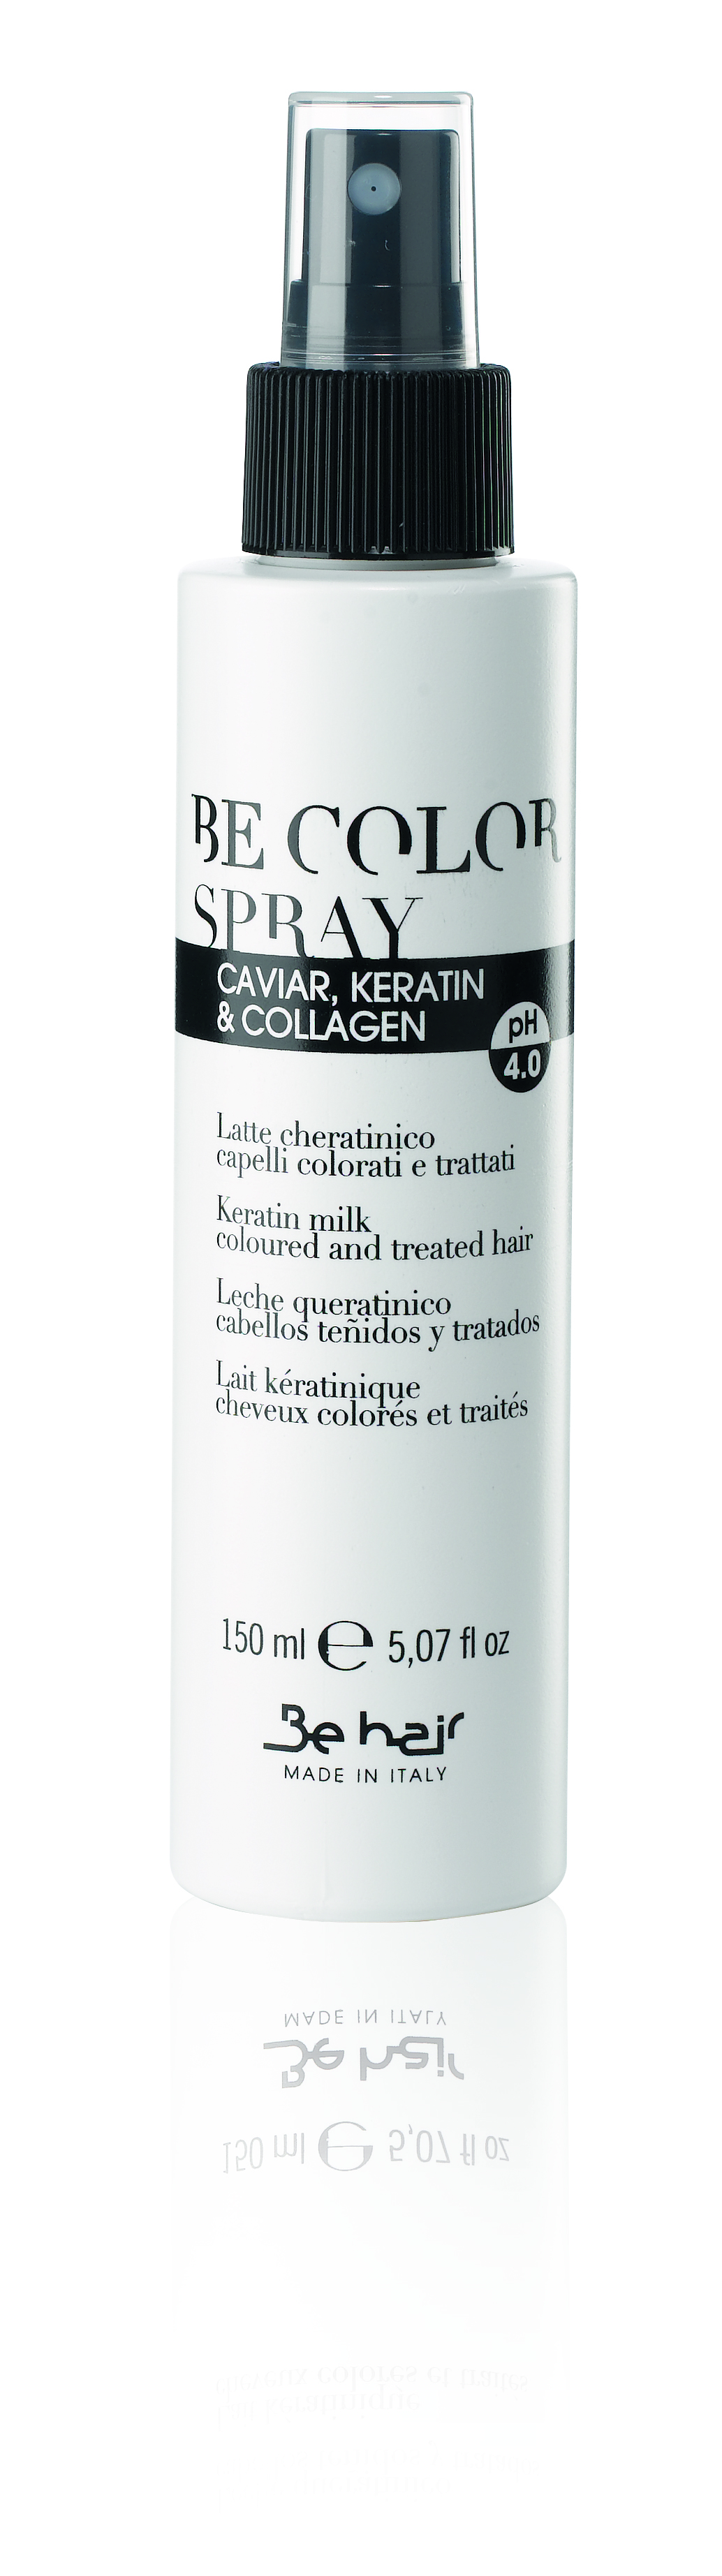 Be Color Spray Keratin Milk (Conditioner)